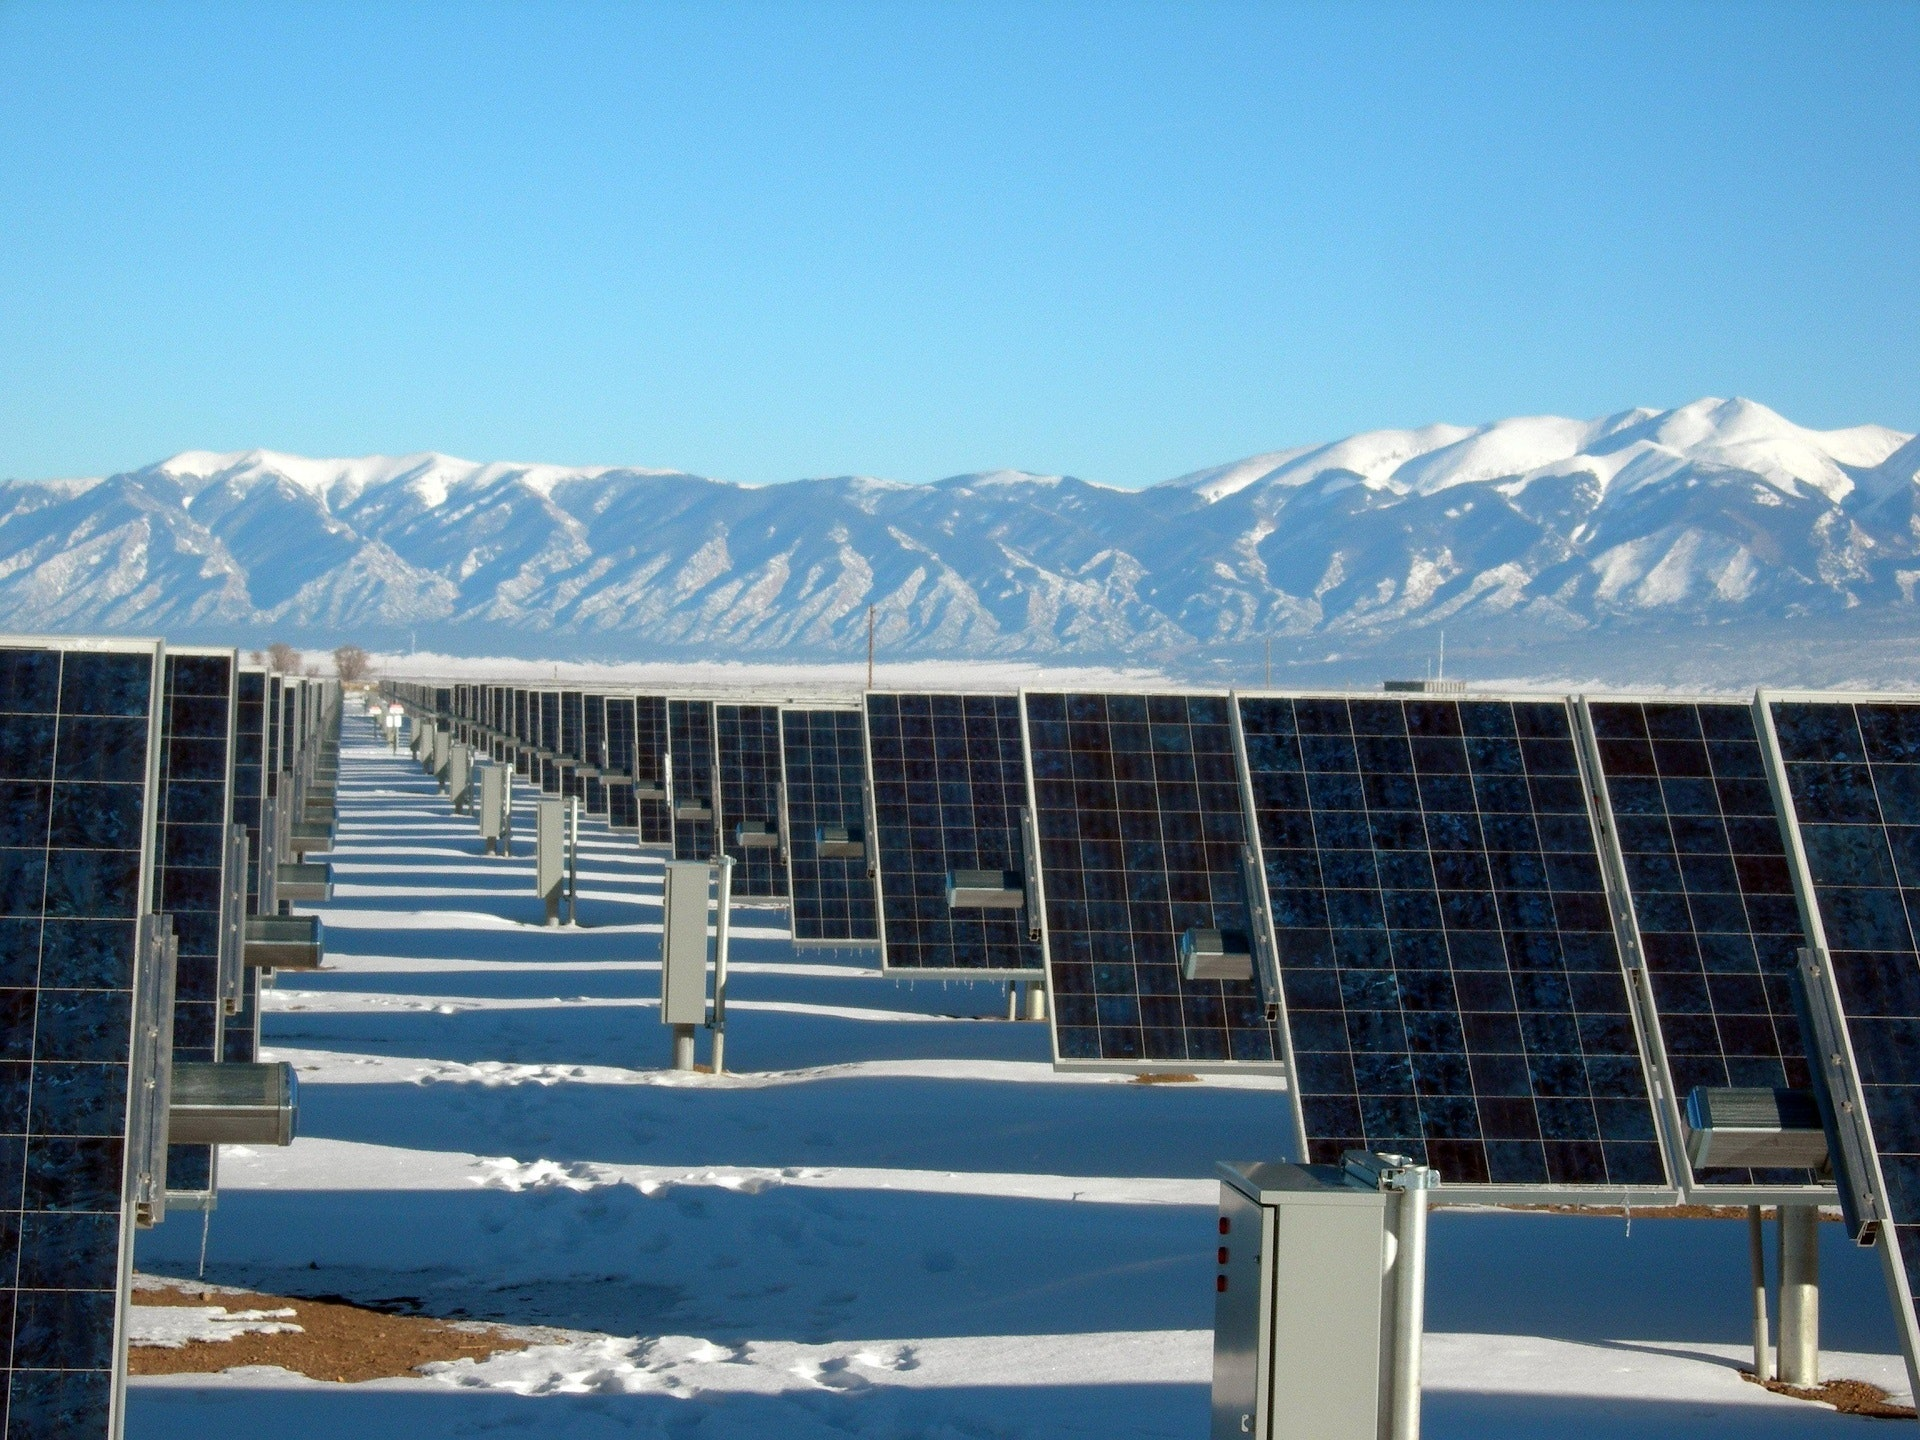 Silver and Black Solar Panels on Snow Covered Ground, Cold, Energy, Mountains, Power, HQ Photo